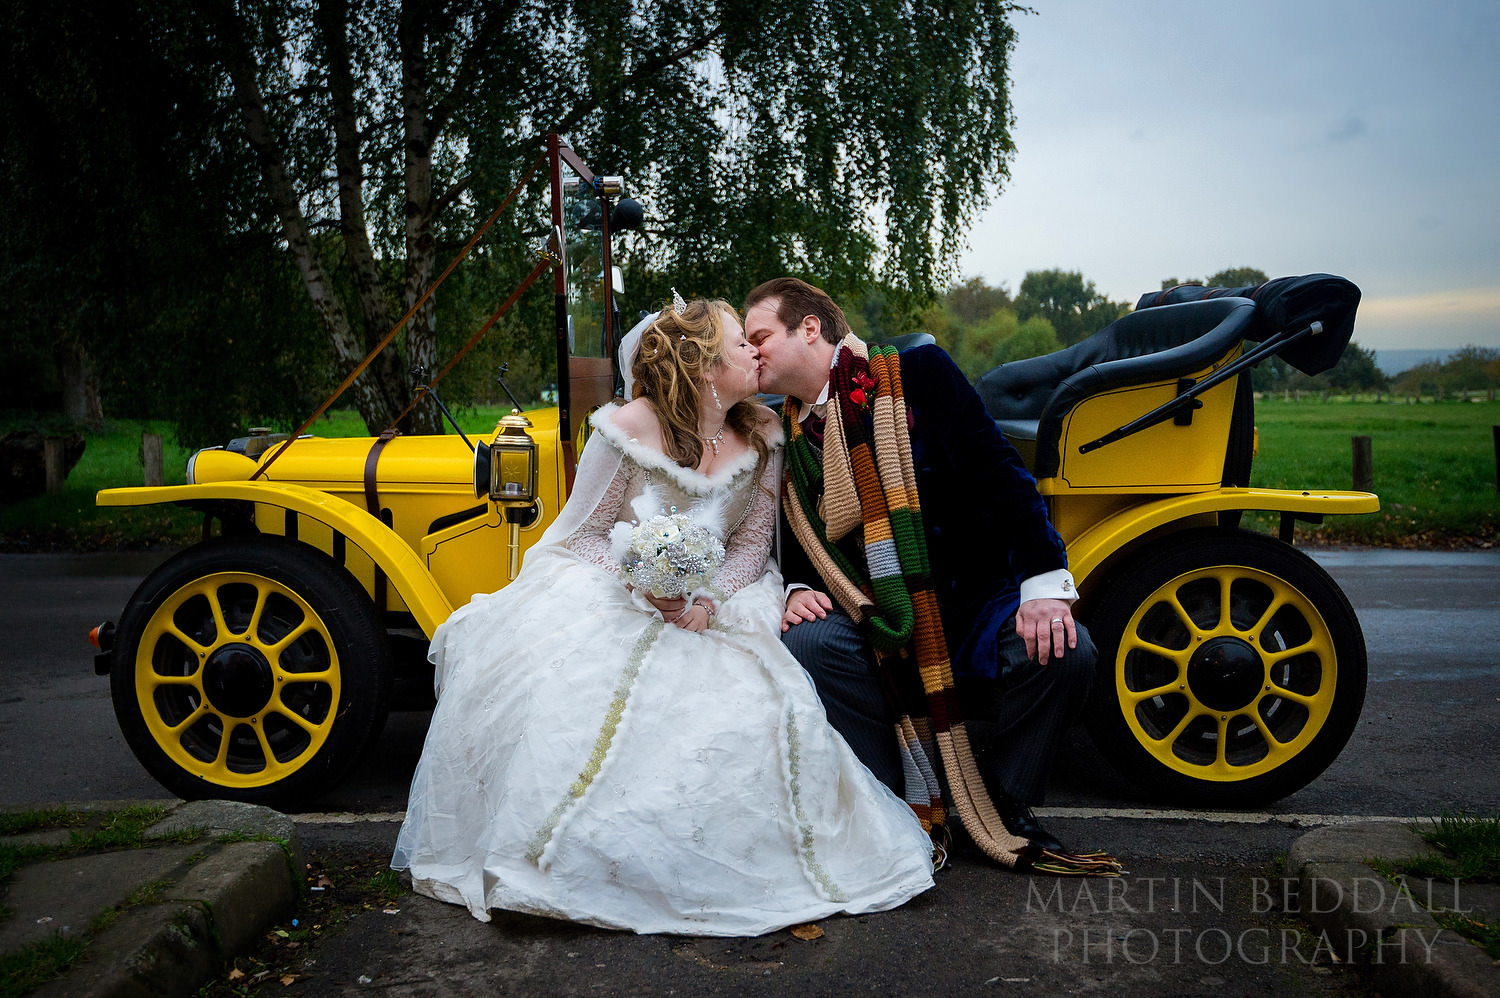 A kiss on the Doctor Who wedding car